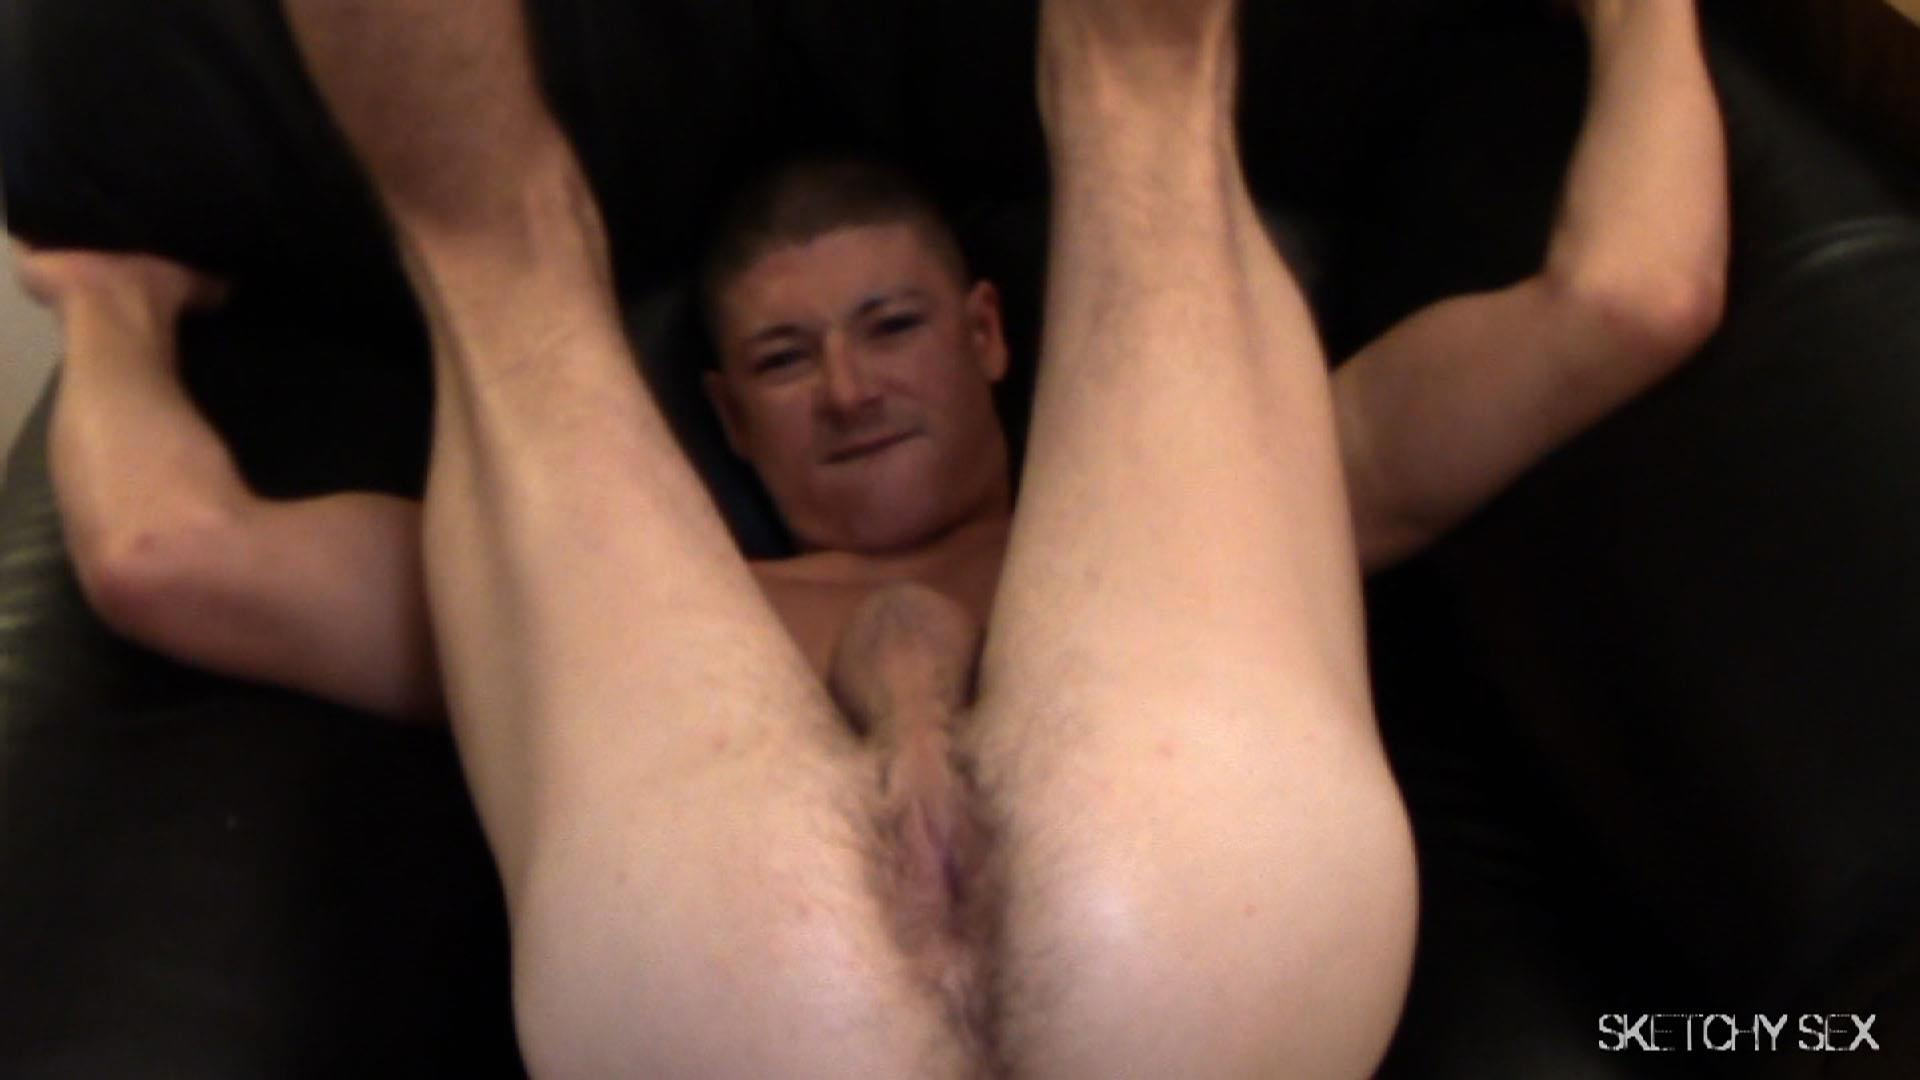 "Sketchy-Sex-Nate-Getting-Fucked-Bareback-By-A-10-Inch-Craigslist-Cock-Amateur-Gay-Porn-03 Taking A 10"" Craigslist Cock Bareback While The Roommate Watches"